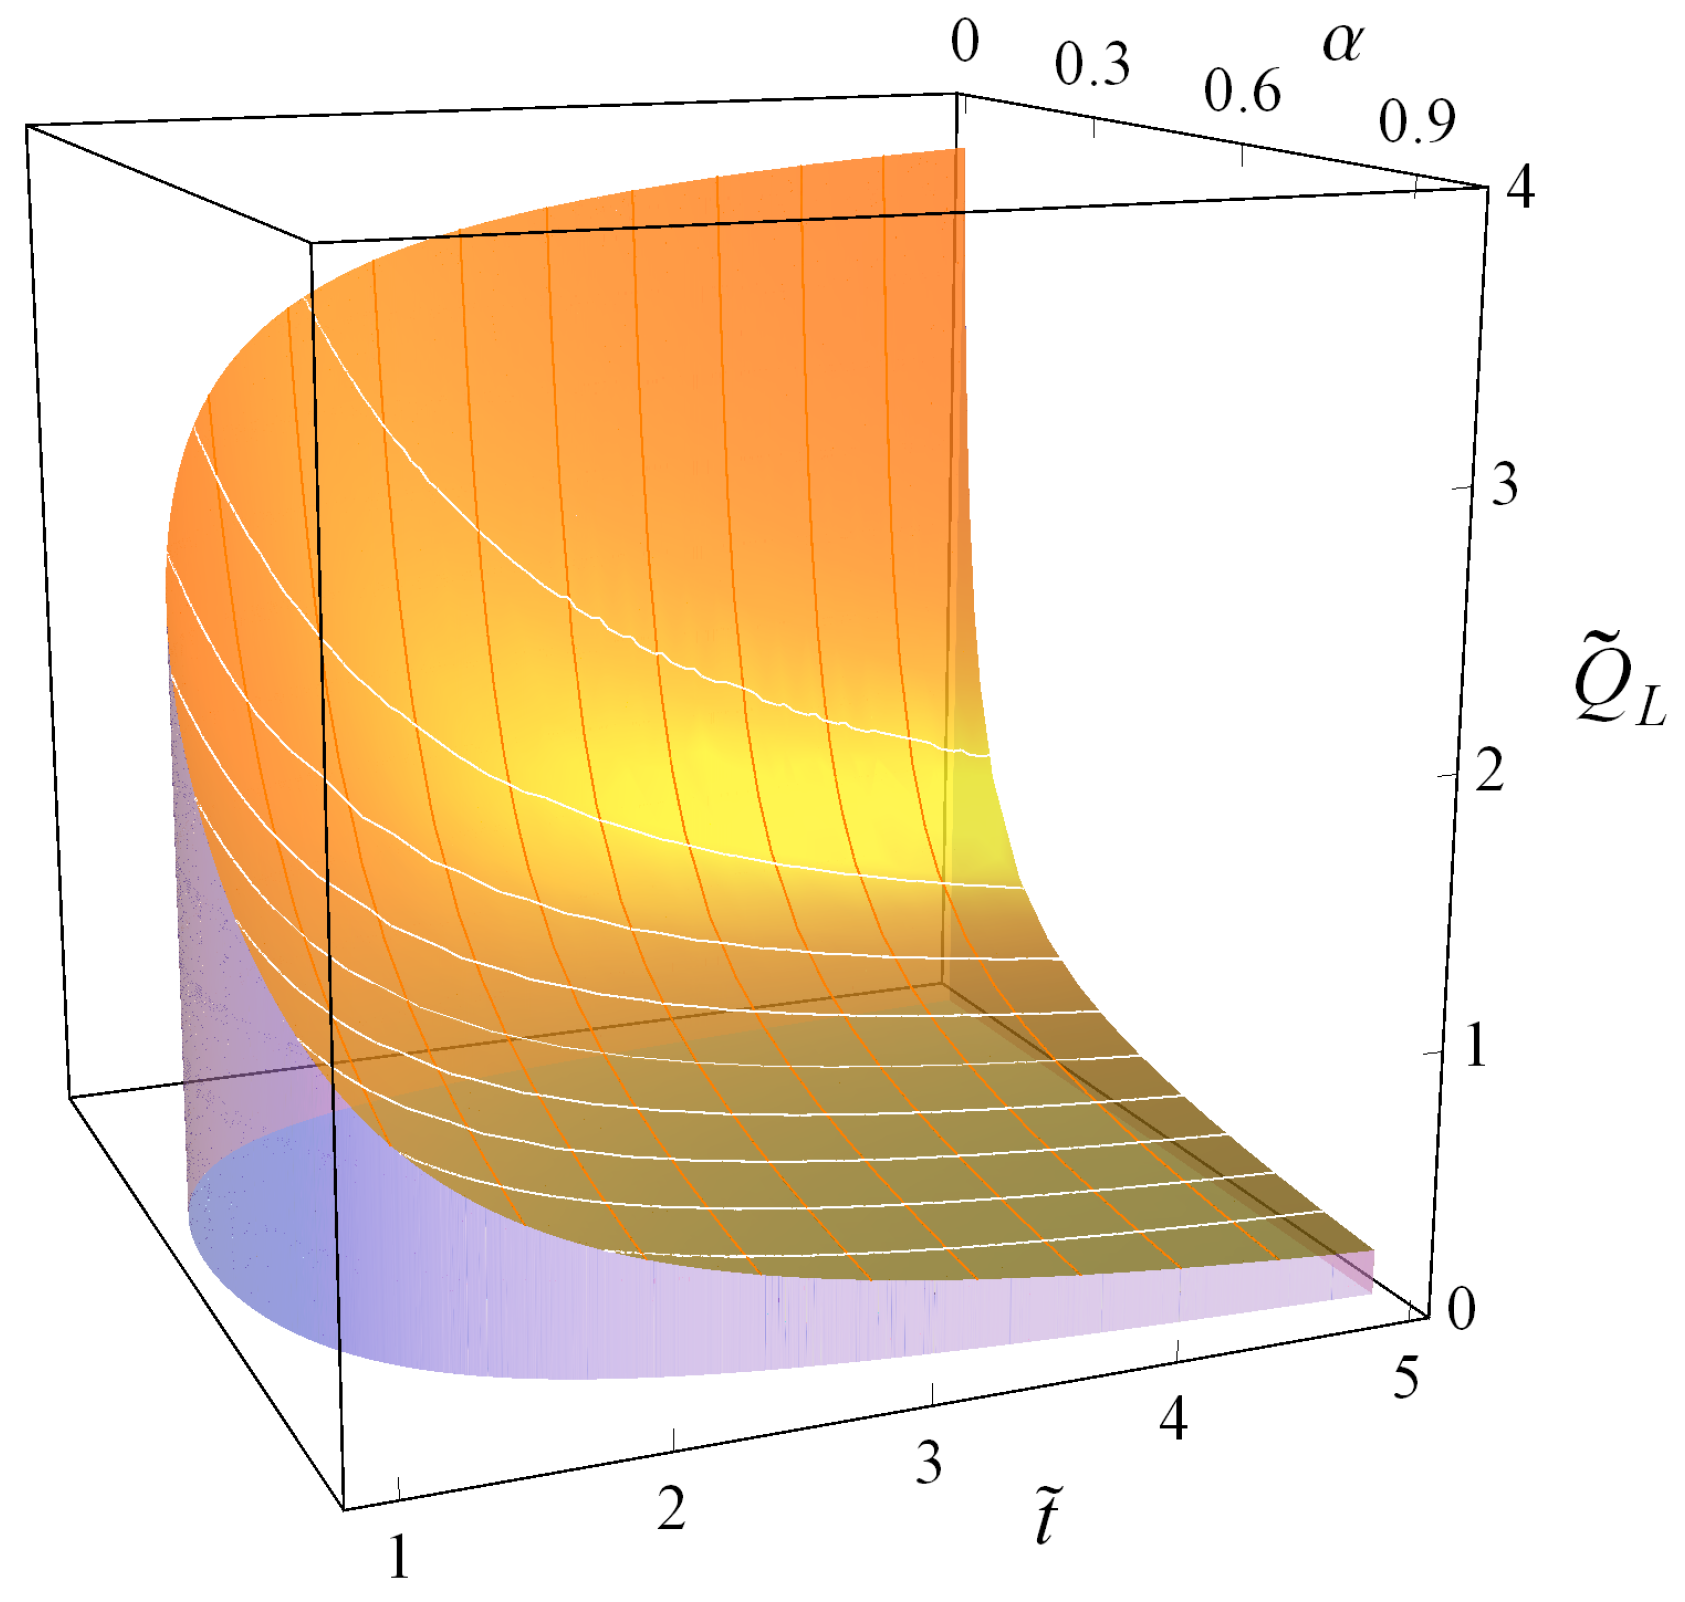 Entropy | Free Full-Text | Carnot-Like Heat Engines Versus Low ...